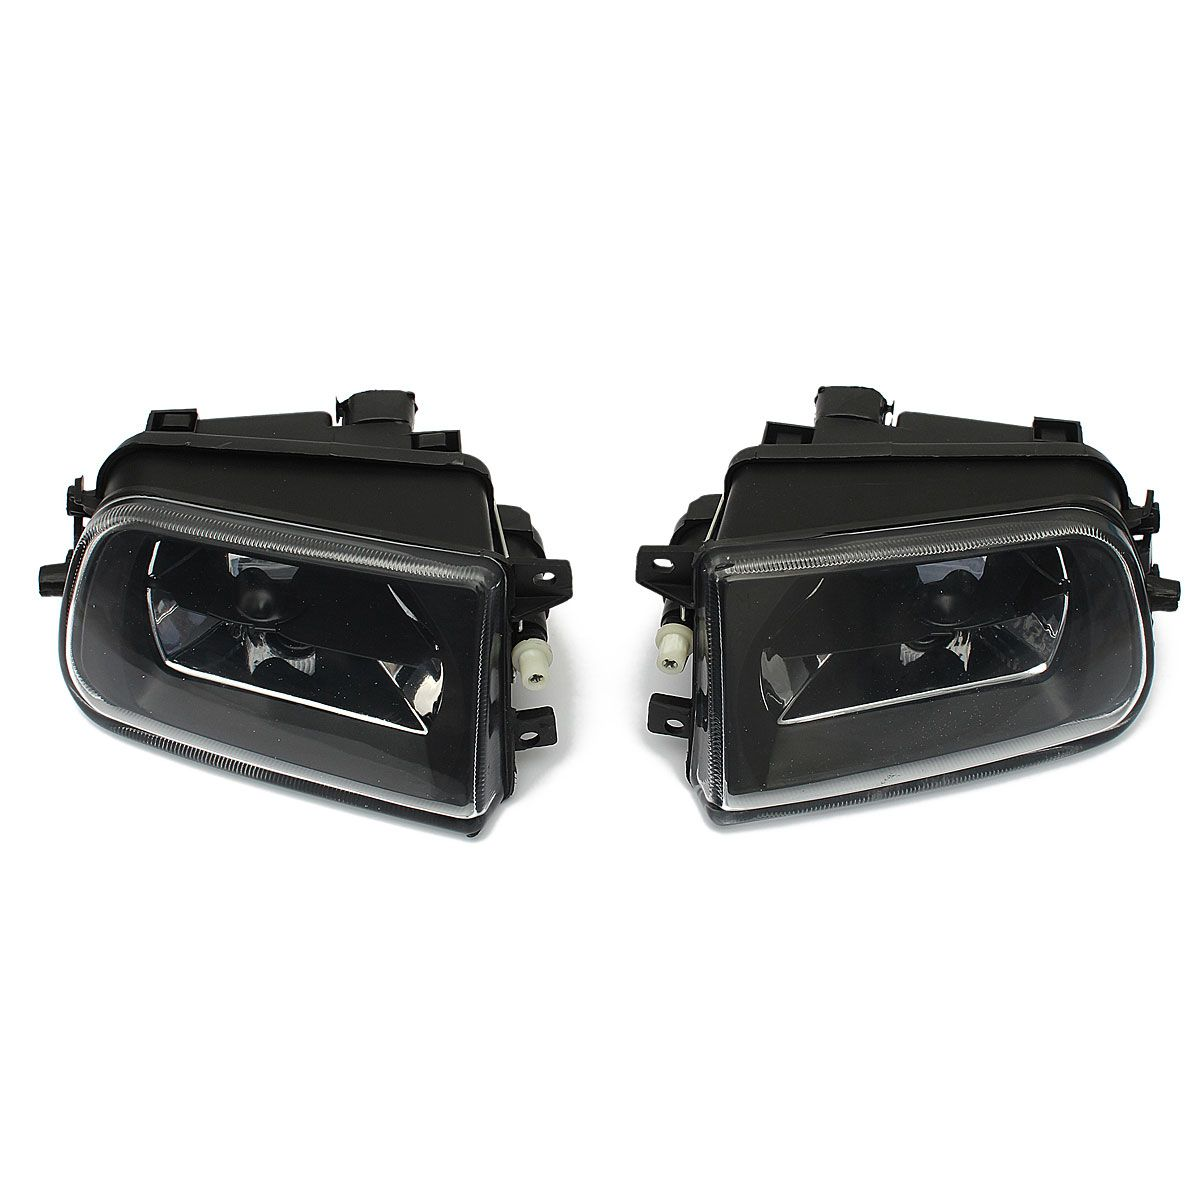 1 Pair Car Fog Lights Housing  Driving Spot Light  Black Housing For BMW E39 5 SERIES Z3 1997-2000